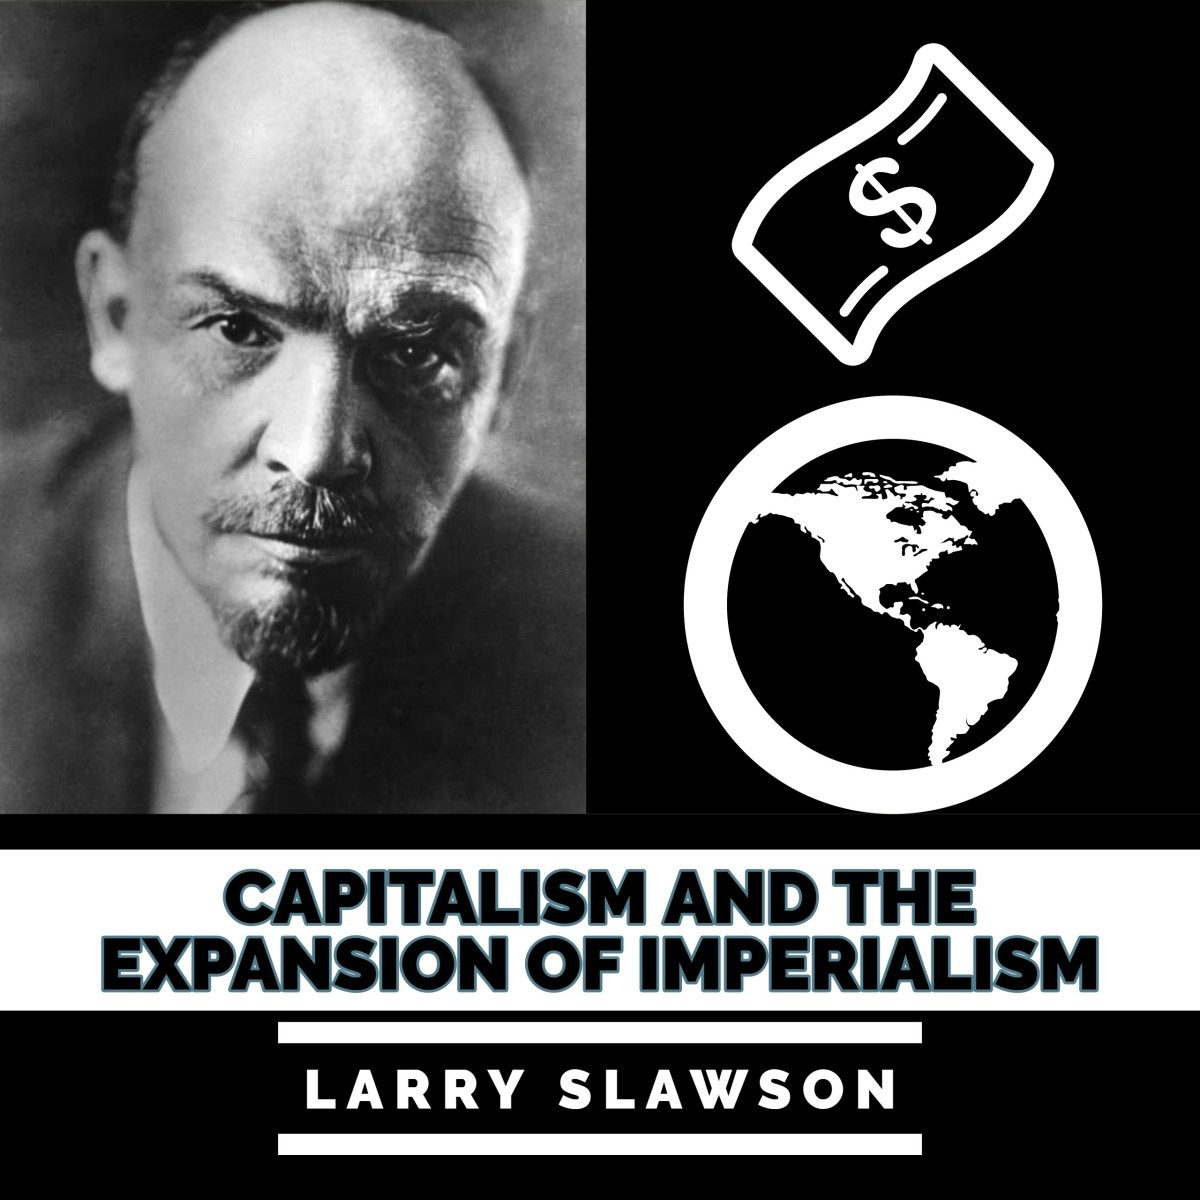 Capitalism and the Expansion of Imperialism